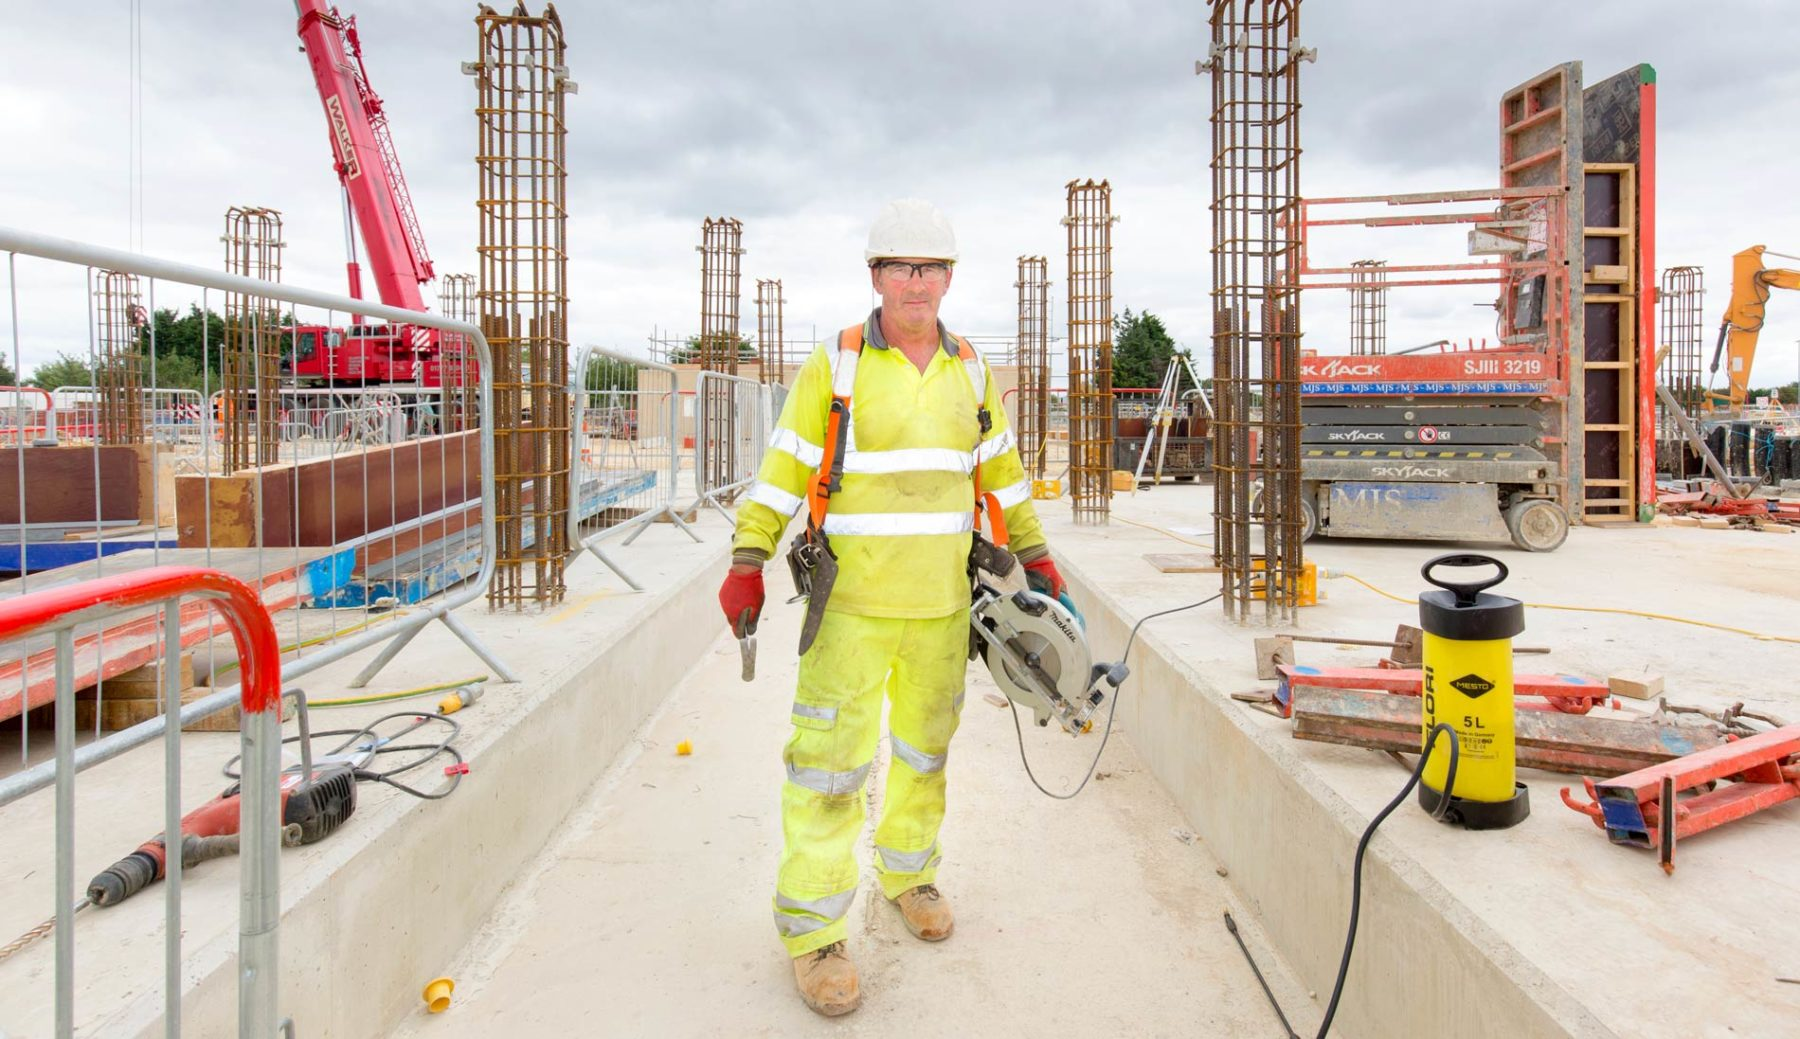 Corporate full length portrait of construction site worker holding a sthil saw